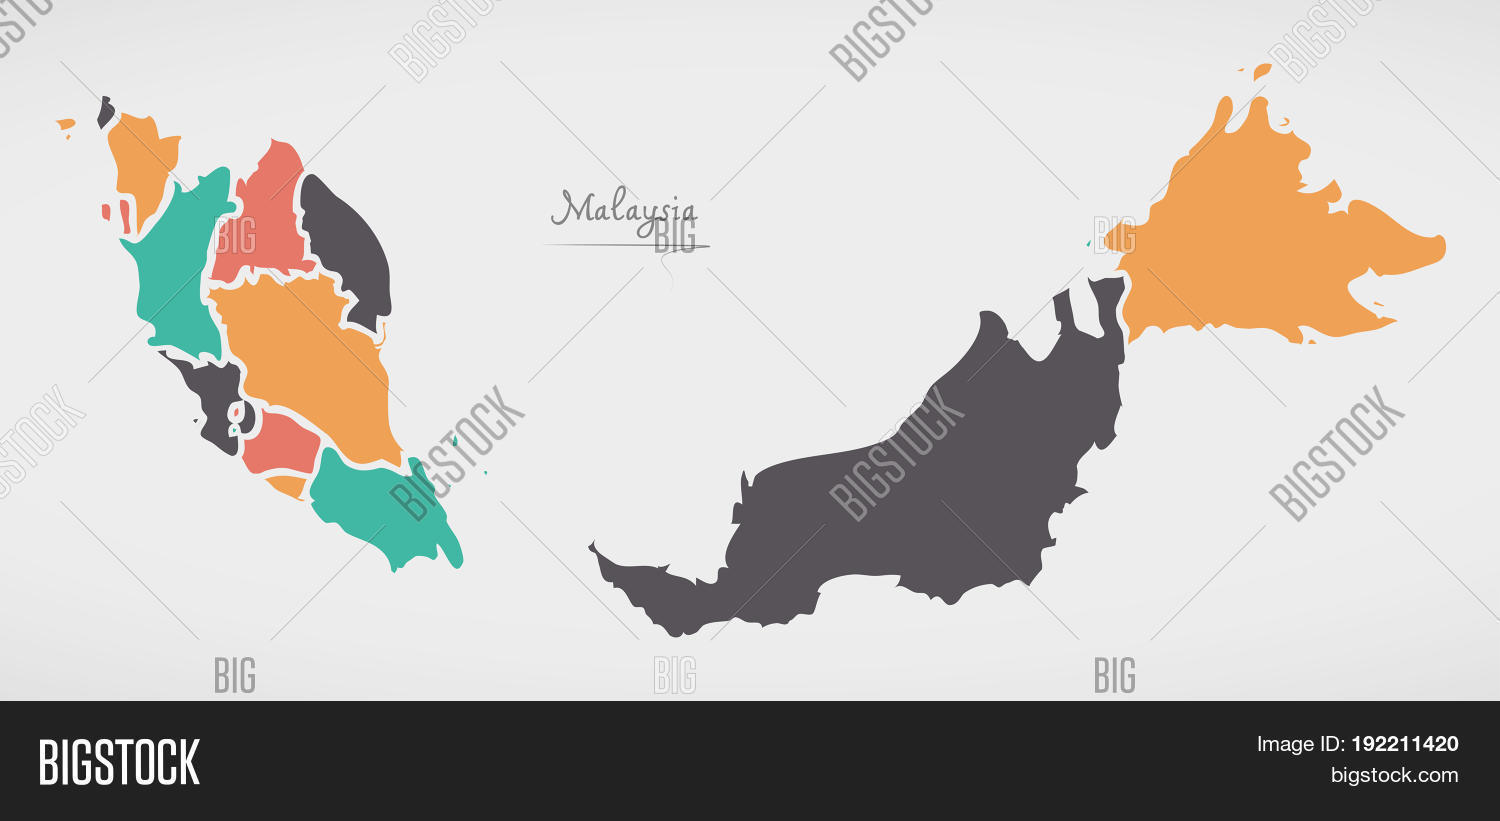 Picture of: Malaysia Map States Image Photo Free Trial Bigstock